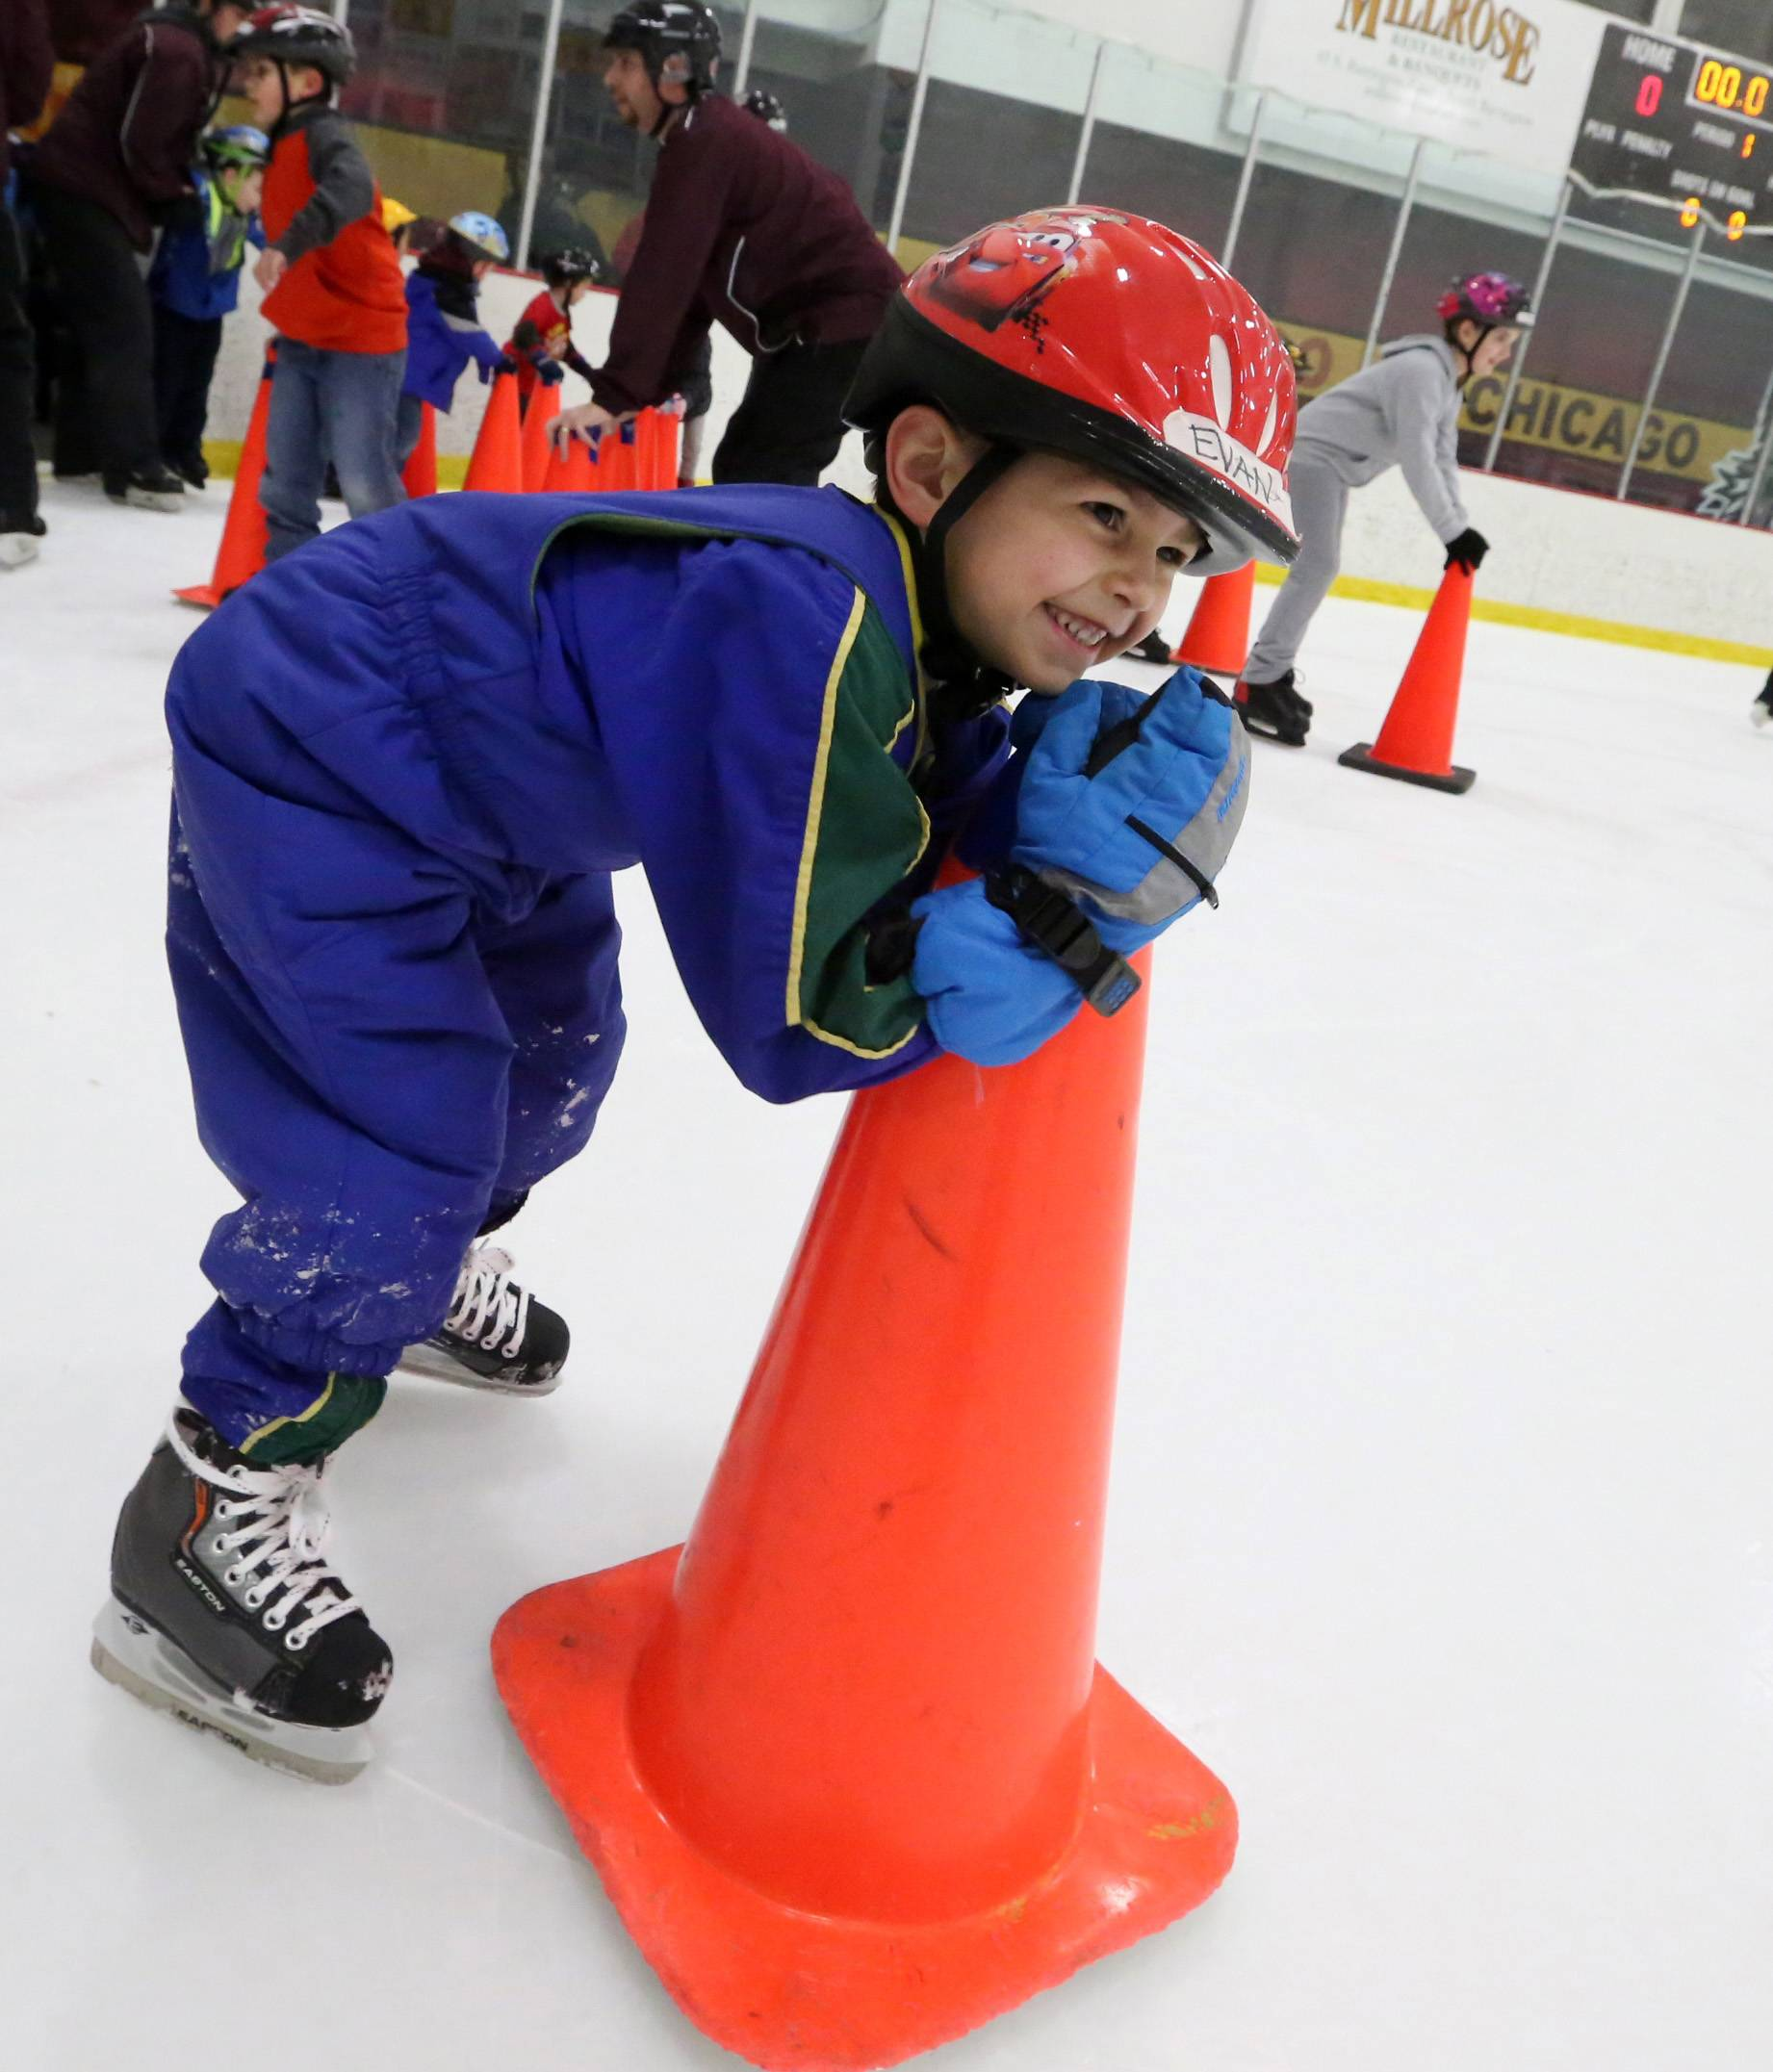 Evan Sher, 5, of Hanover Park, learns to stay up on his skates using an orange traffic cone at USA Hockey's annual Try Hockey For Free event at the Triphahn Center on Saturday in Hoffman Estates.